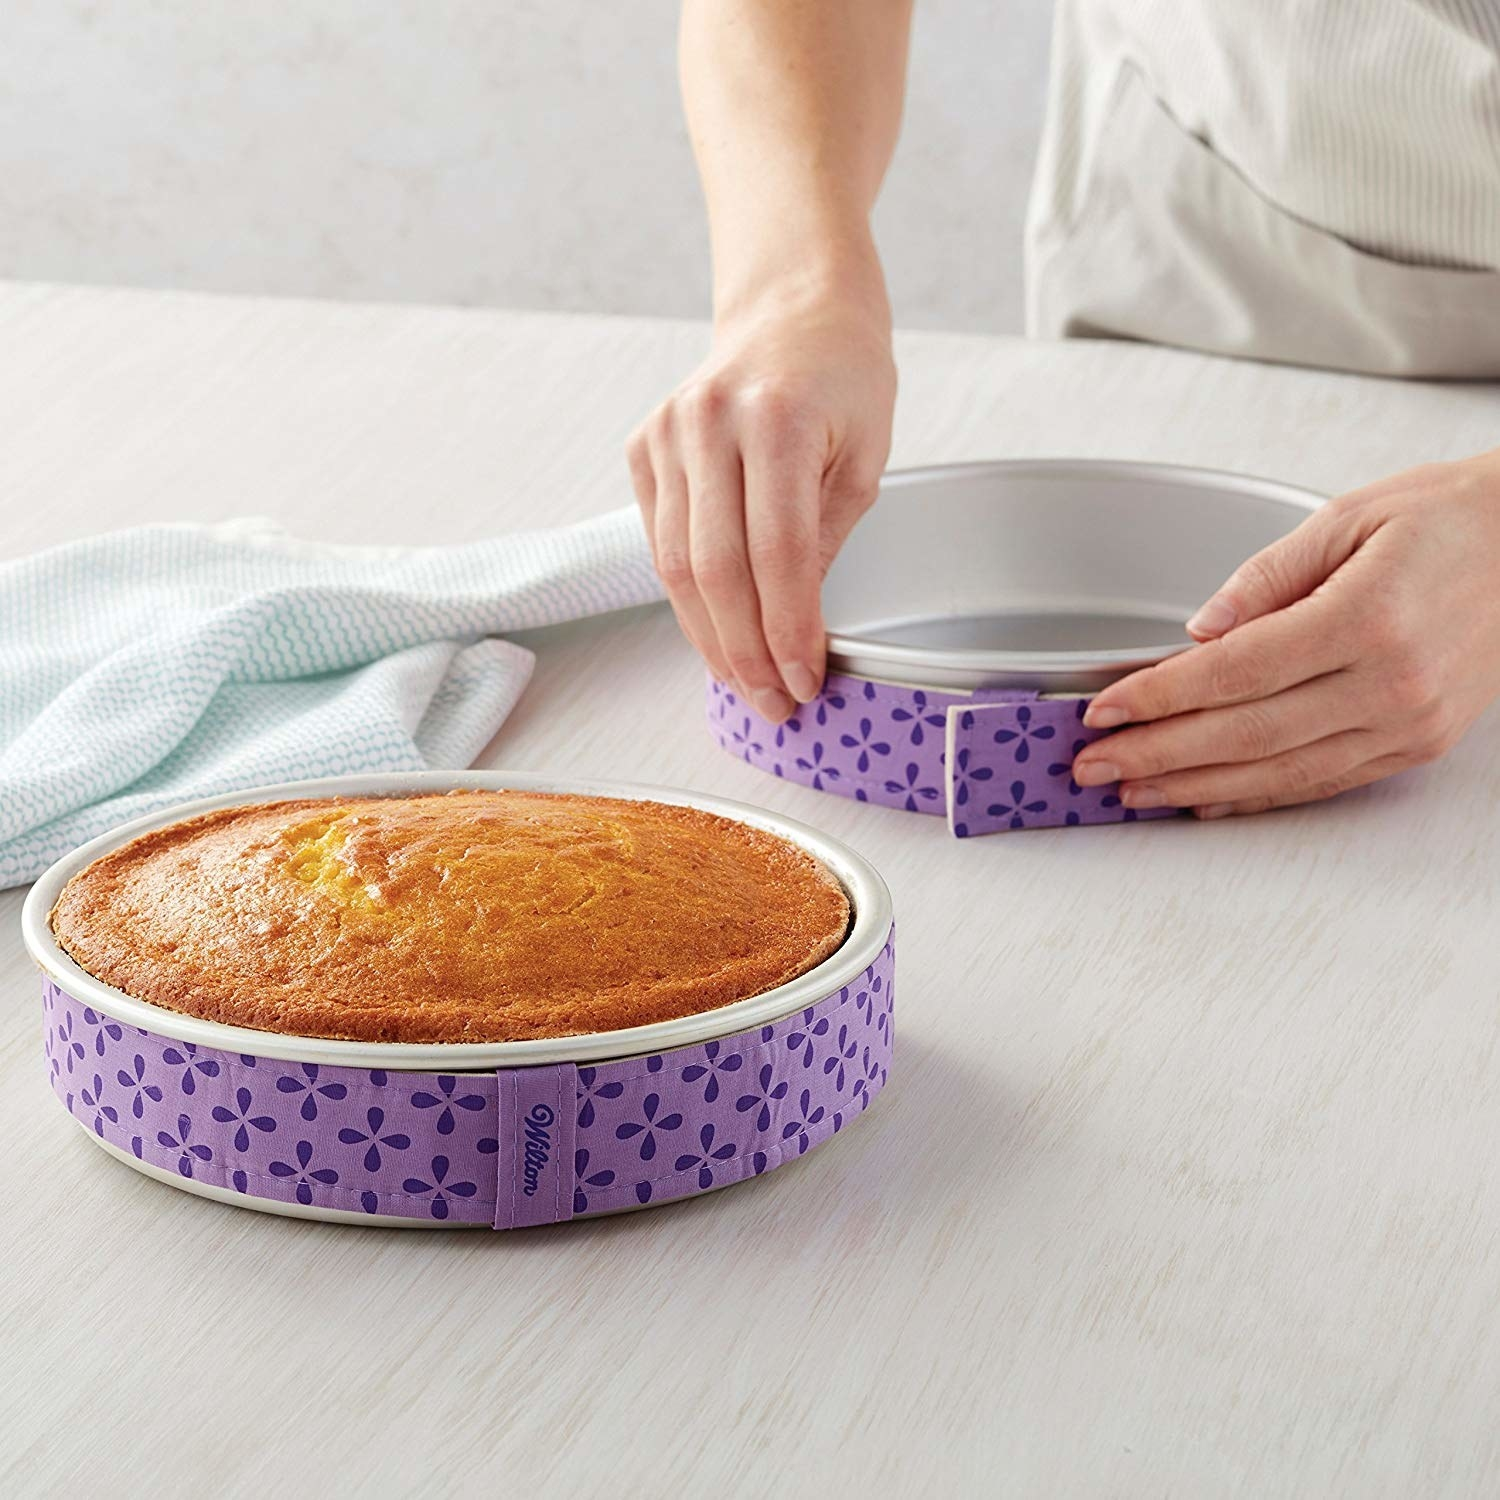 Cake pans wrapped with the fabric strips